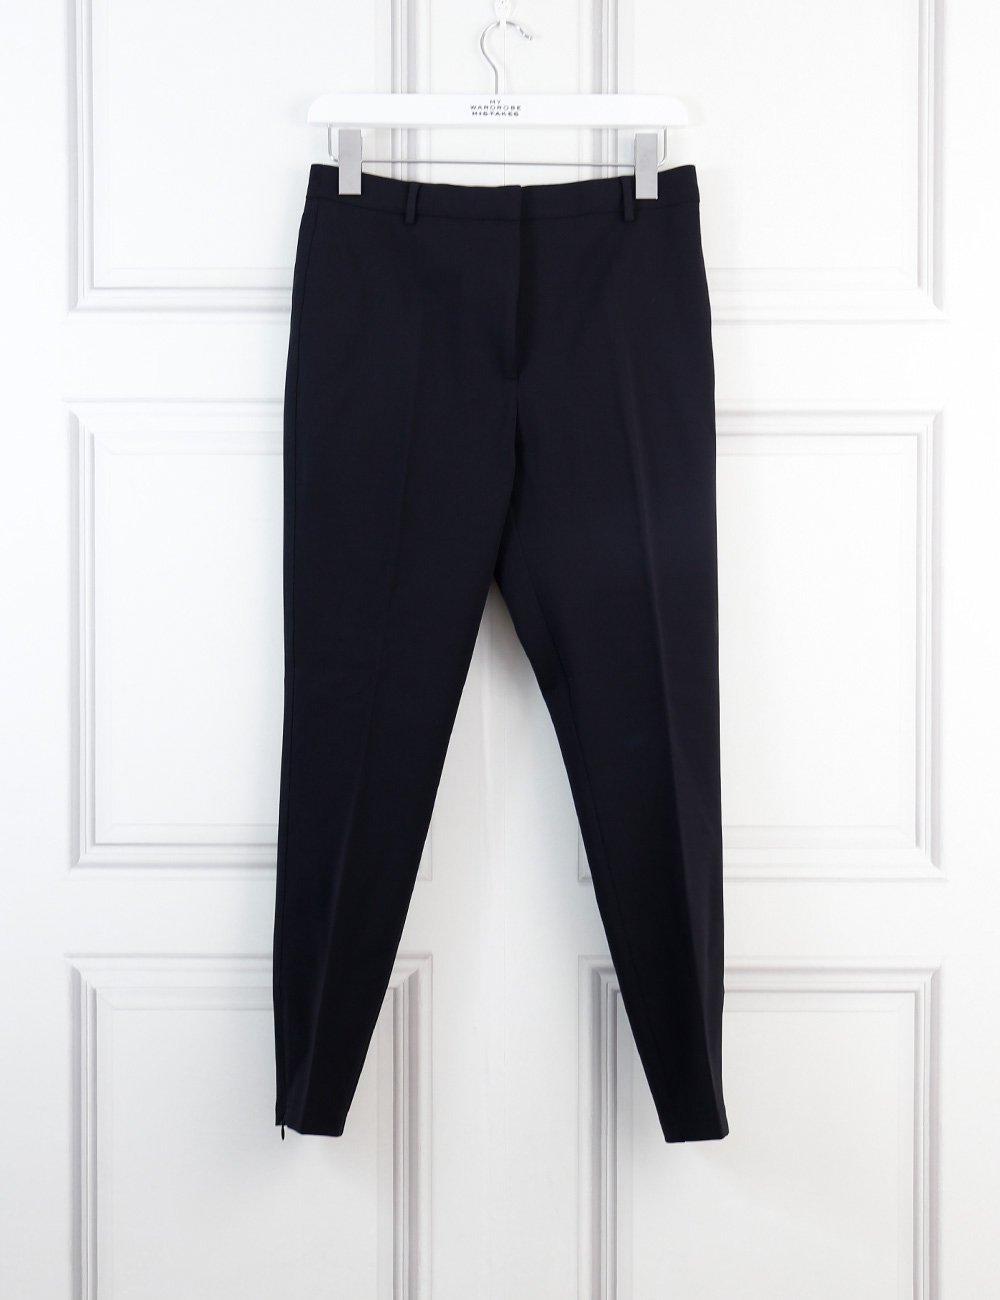 Burberry black tailored trousers with ankle zips 8Uk